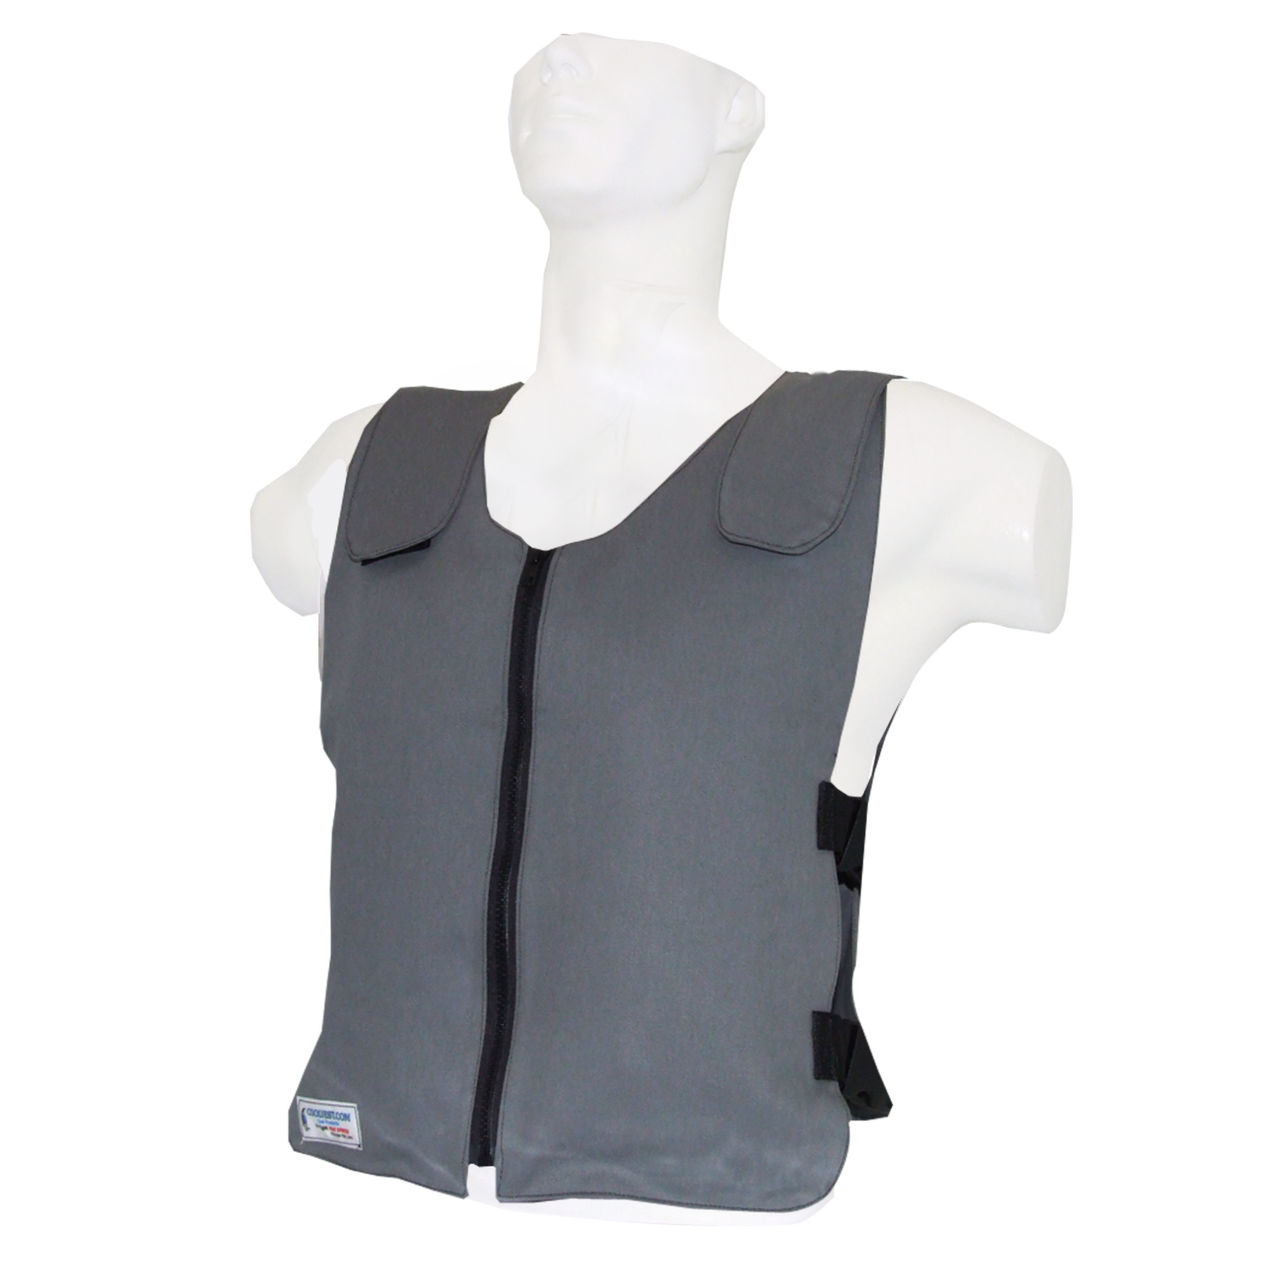 Cooling Vest From Glacier Tek Body Cooling Vests Cool Vests Ice